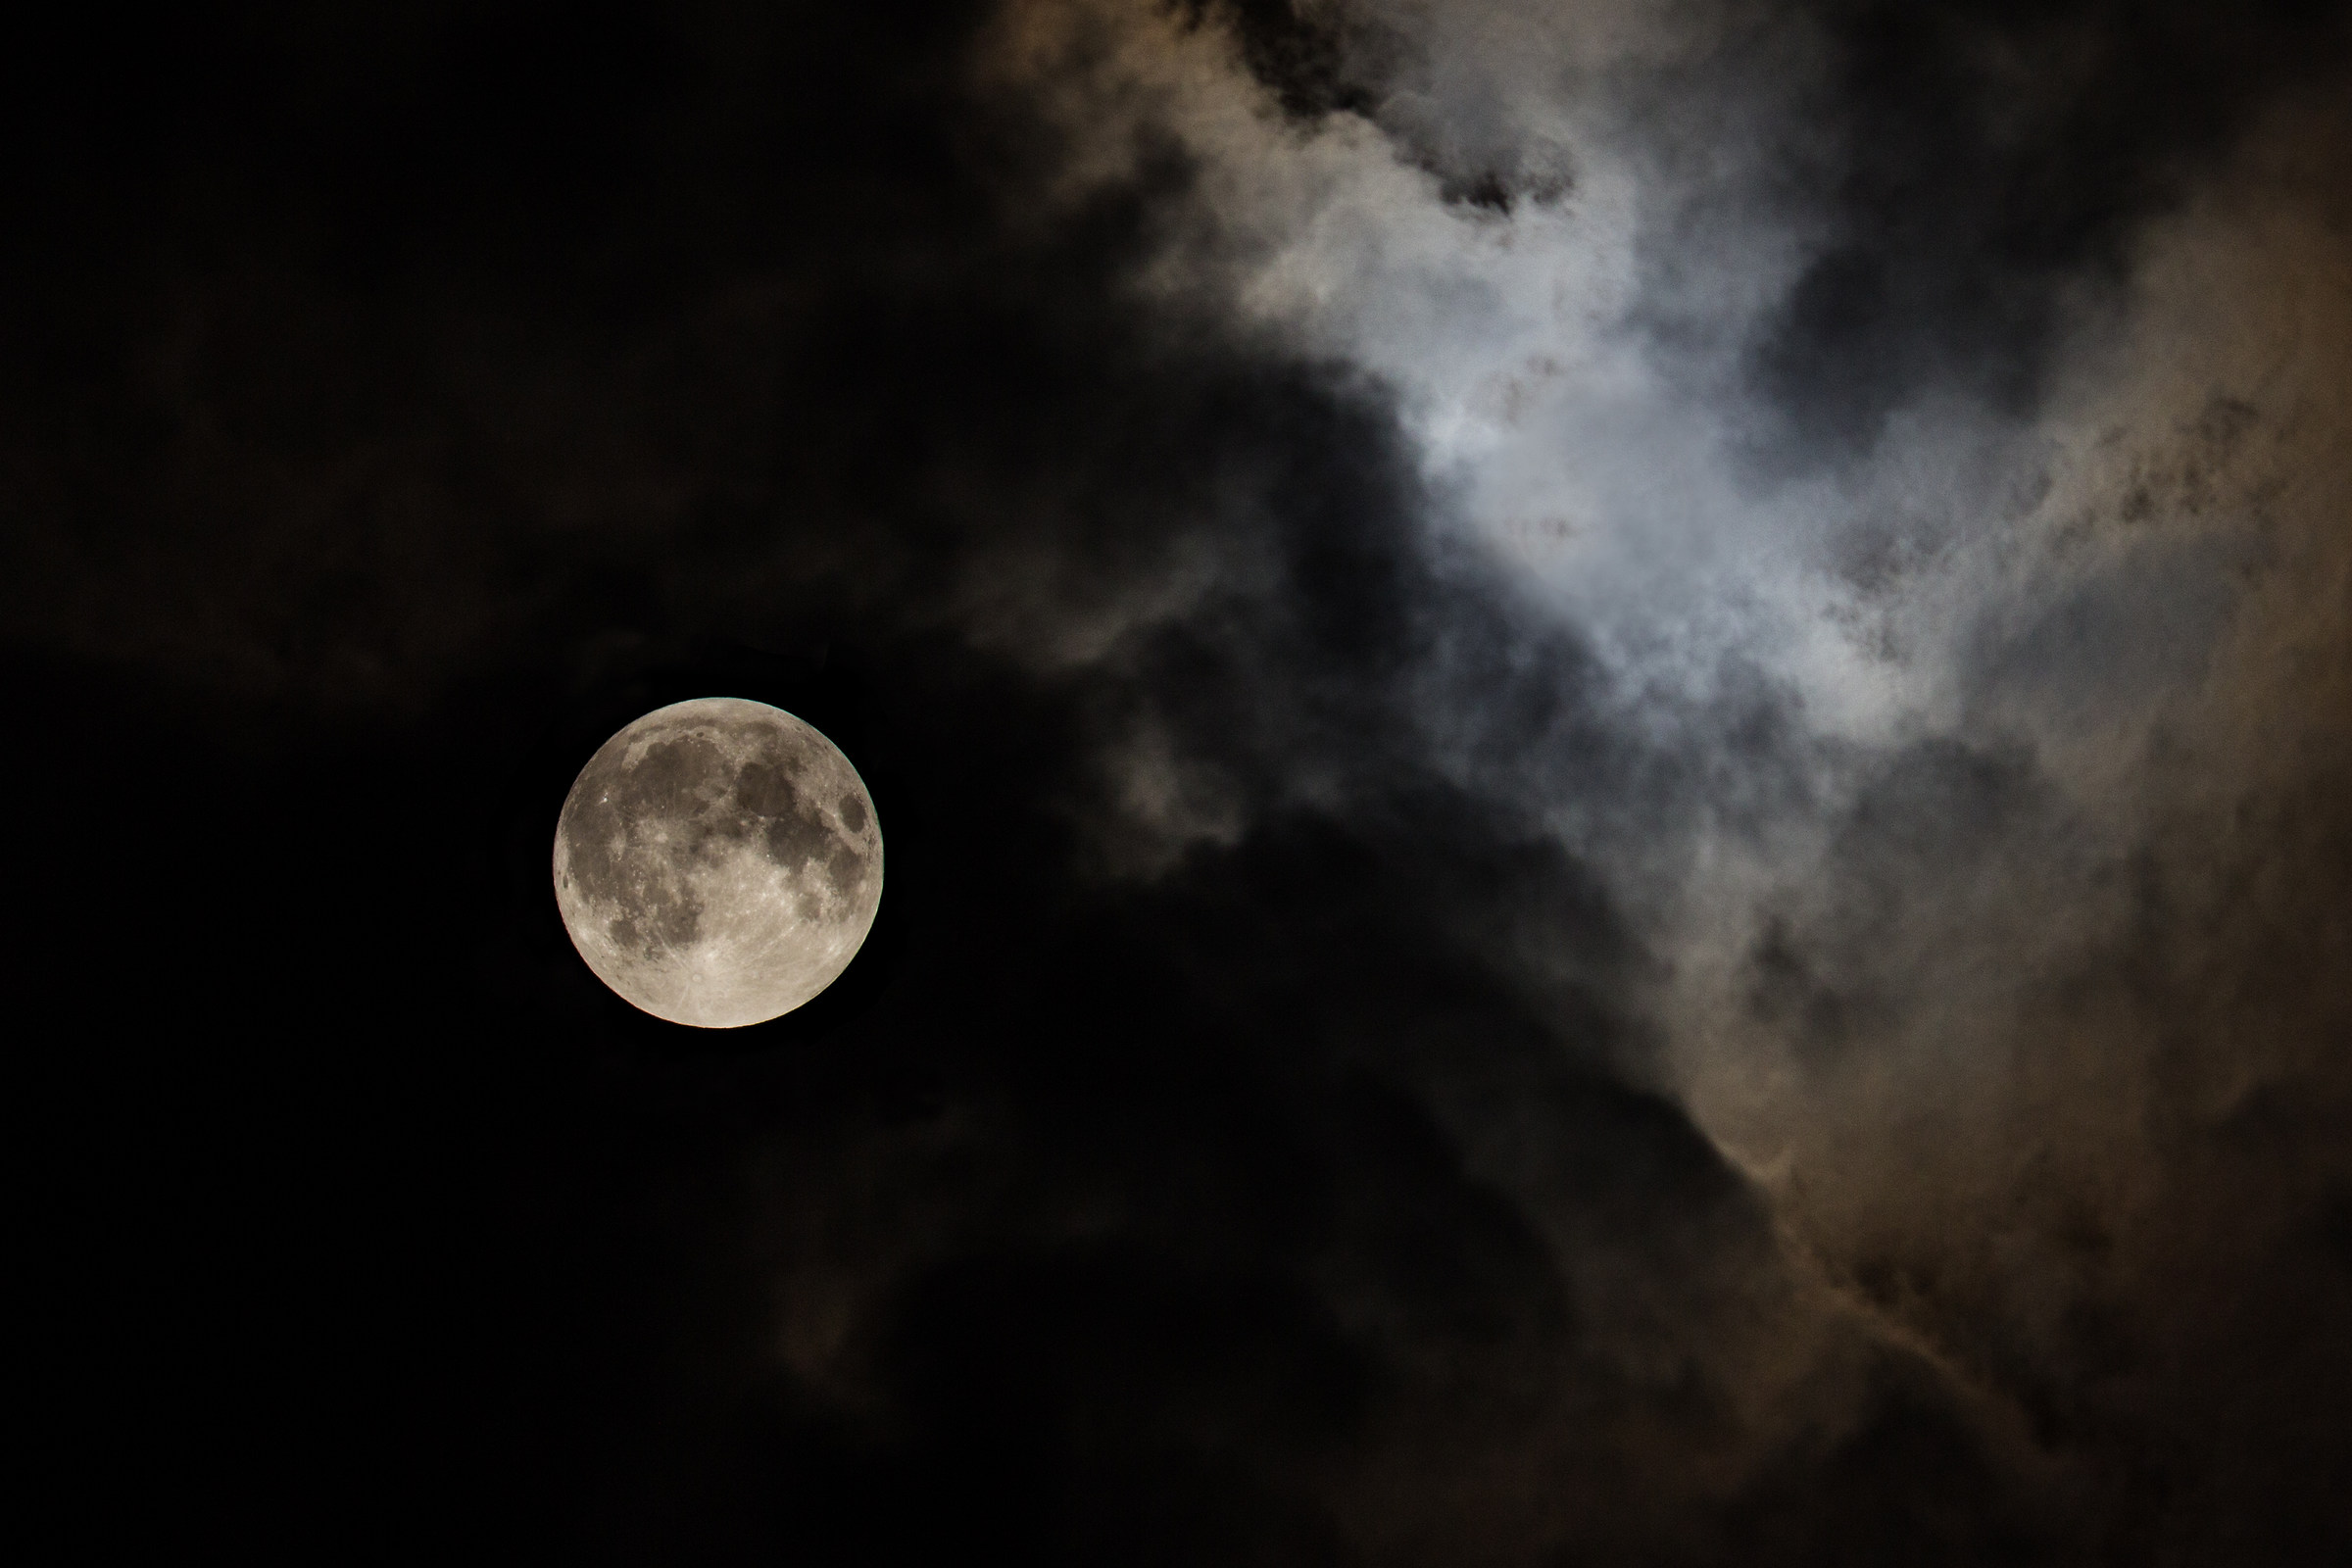 Moon 09/28/2015 23.15 hours (the night of the eclipse)...